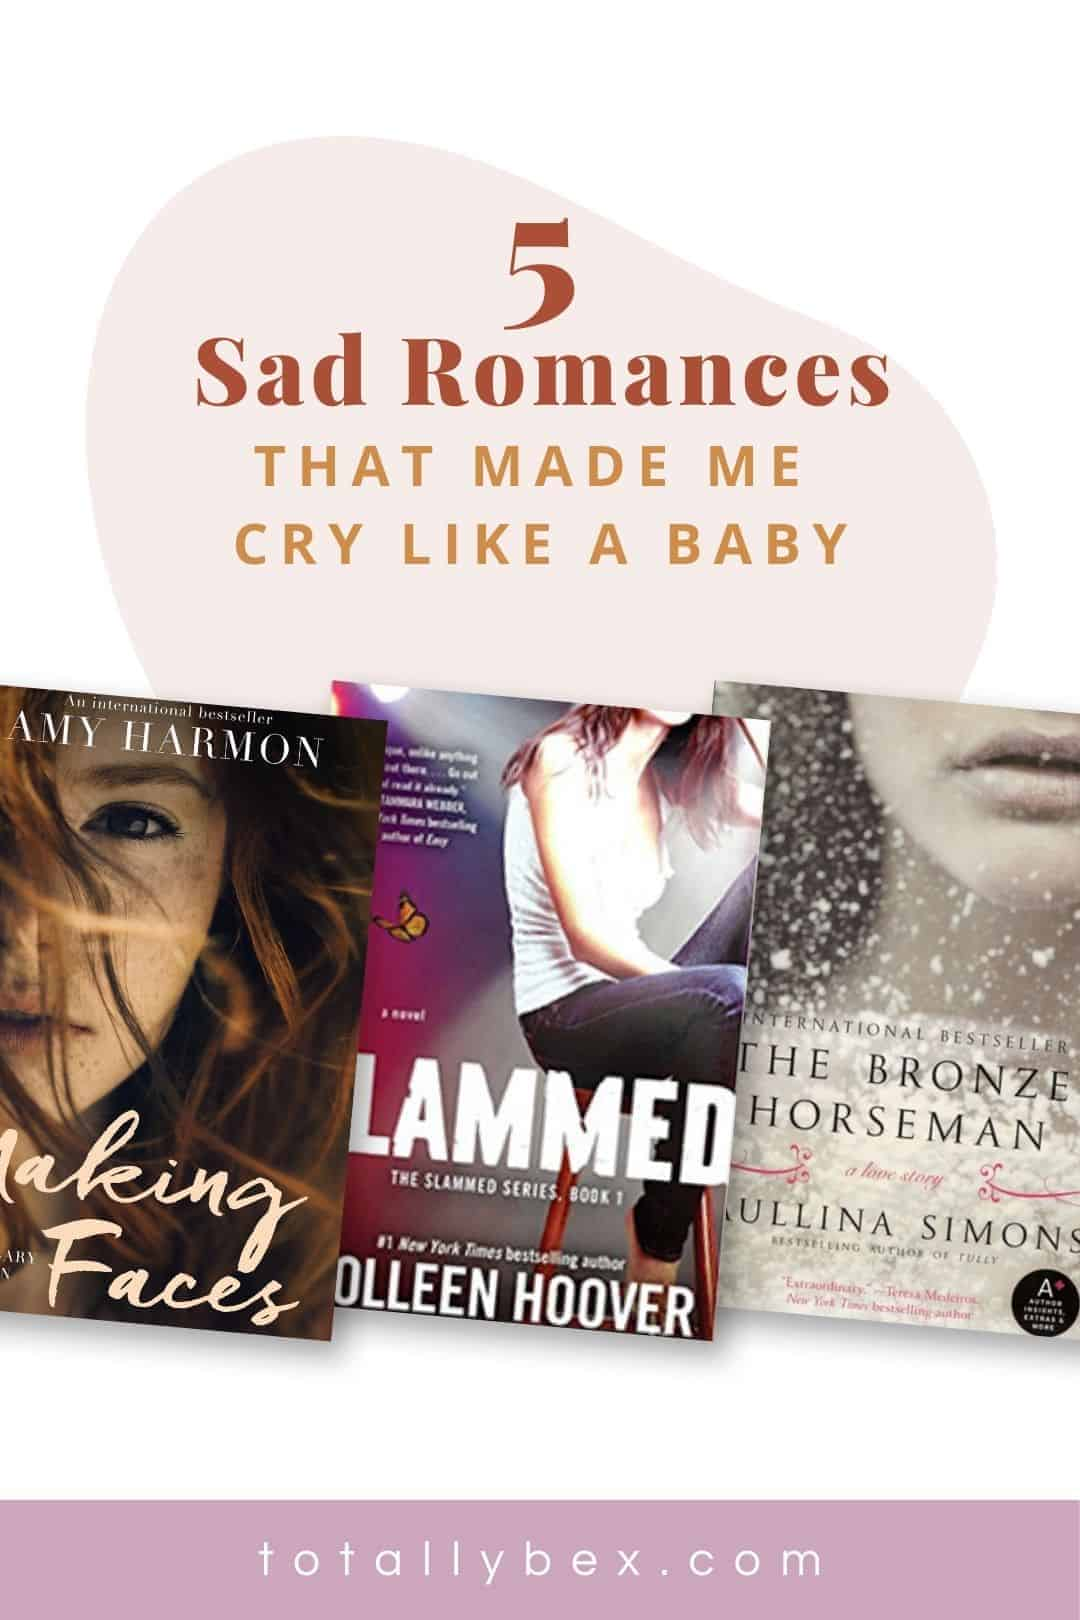 Grab a box of tissues, a bottle of wine, and some chocolates because this list of my 5 favorite sad romance books made me cry like a baby—I know you will, too!